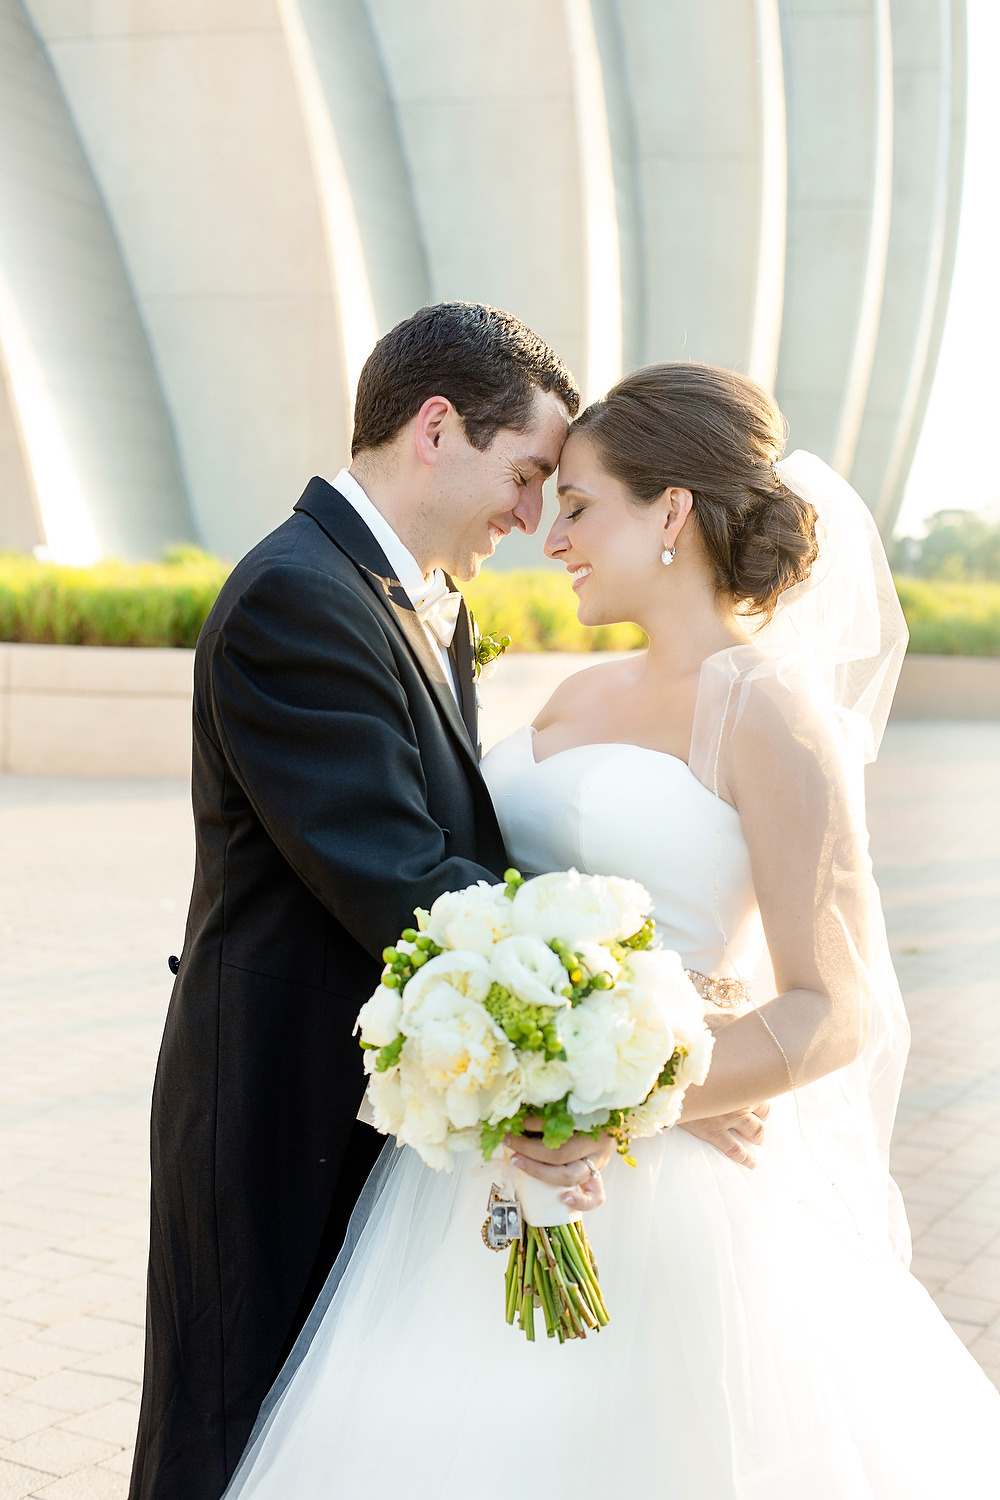 Kansas City Wedding at The Cathedral and Gallery Event Space - Photography By Claire Ryser